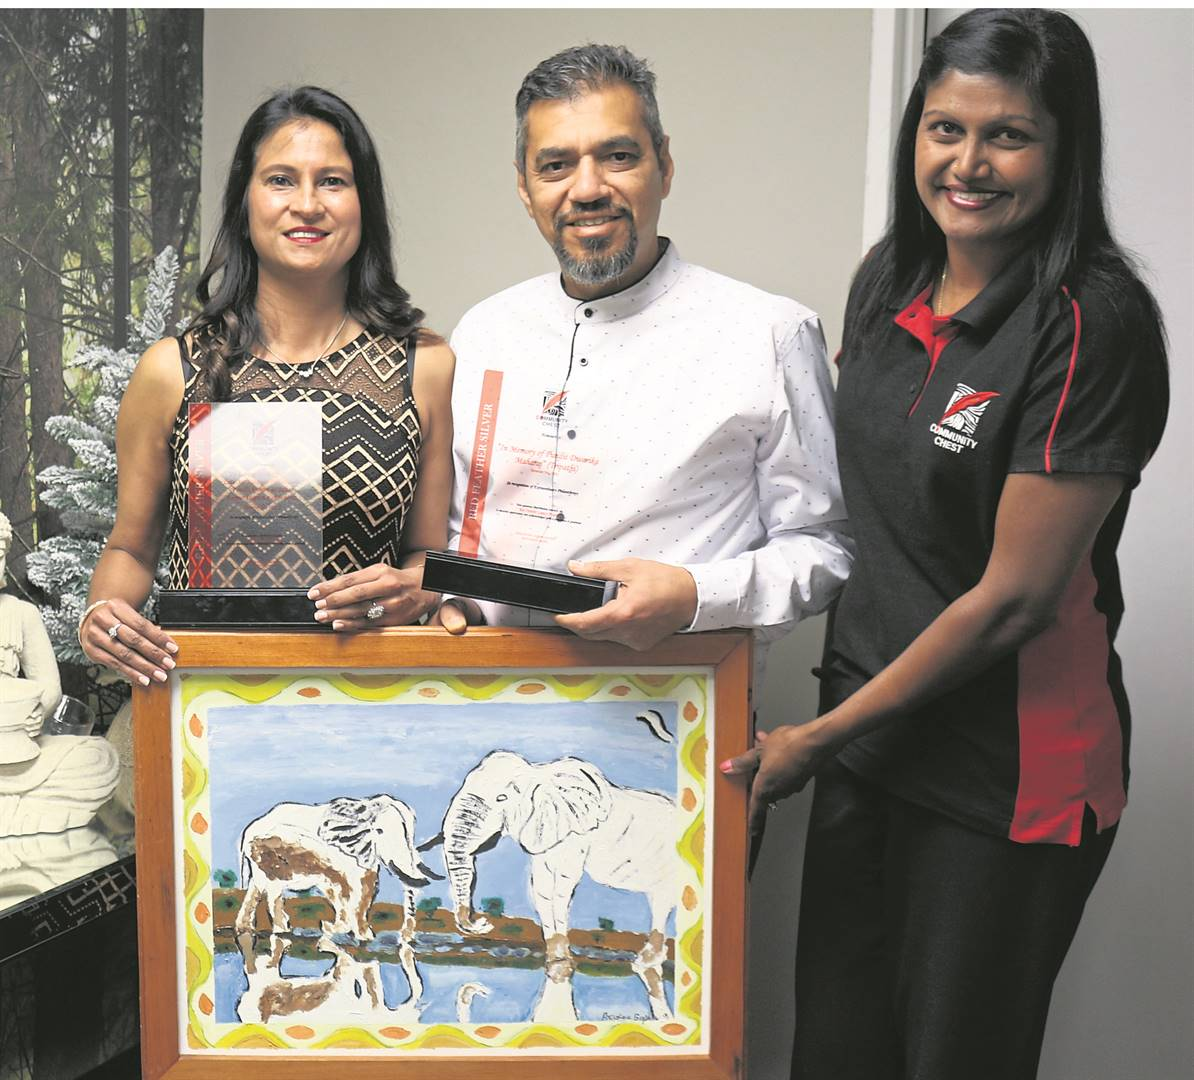 From left: Dr Darshanee Patel (Medical Aesthetics) and husband Dr Sanjay Maharaj (Cardiologist) receive their Red Feather Legacy Certificates and a painting donated by artist Reggie Gopaul to the Community Chest, from Angie Narayanan.PHOTO: supplied